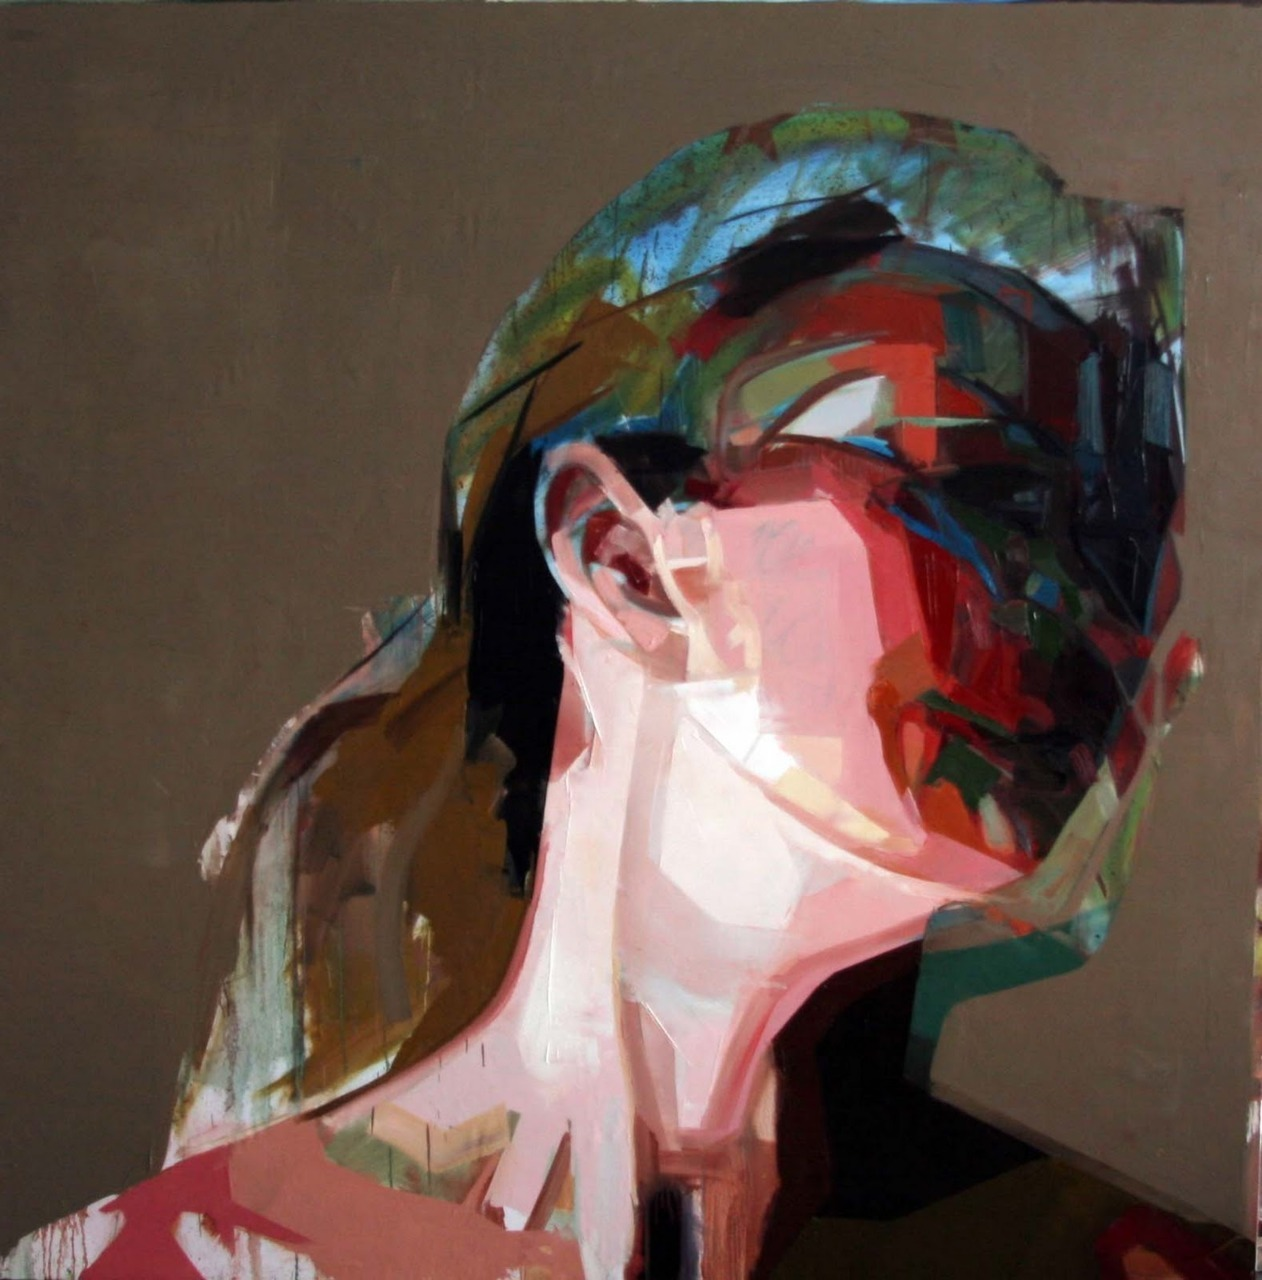 Laughing with a Mouth Full of Blood by Simon Birch